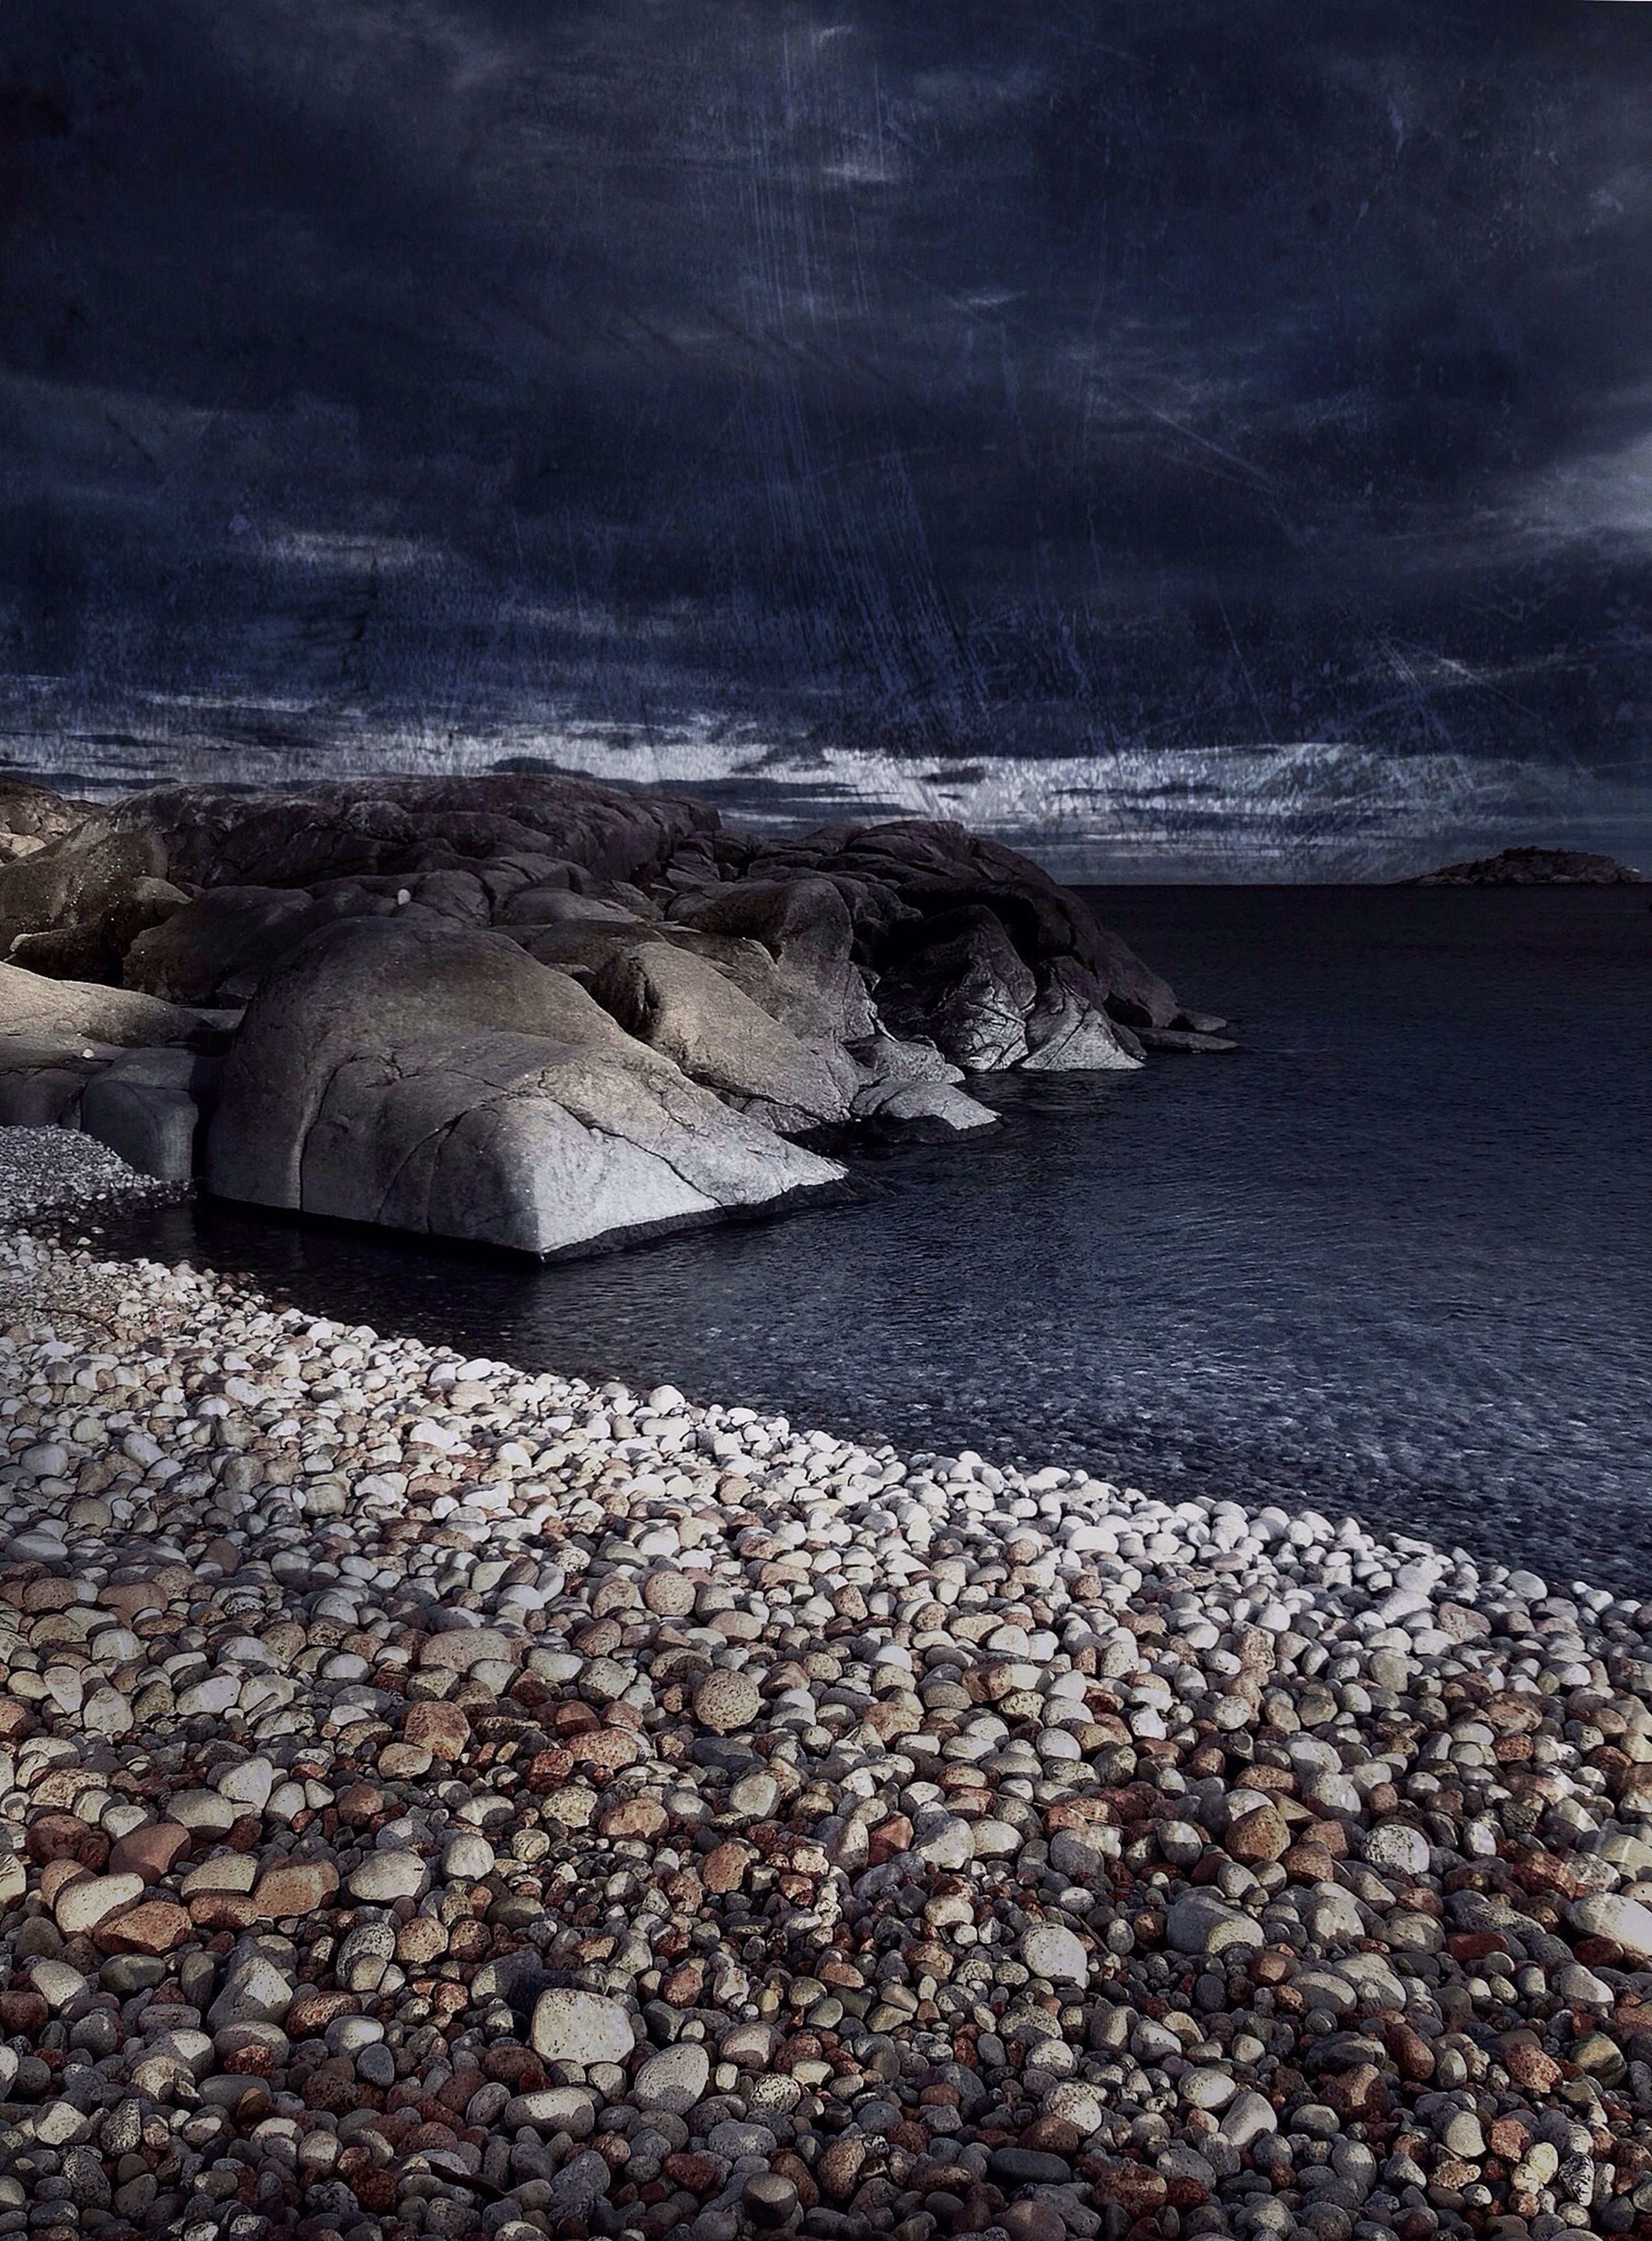 water, sky, sea, tranquility, beach, tranquil scene, scenics, cloud - sky, nature, stone - object, beauty in nature, shore, rock - object, pebble, horizon over water, cloudy, stone, weather, idyllic, surface level